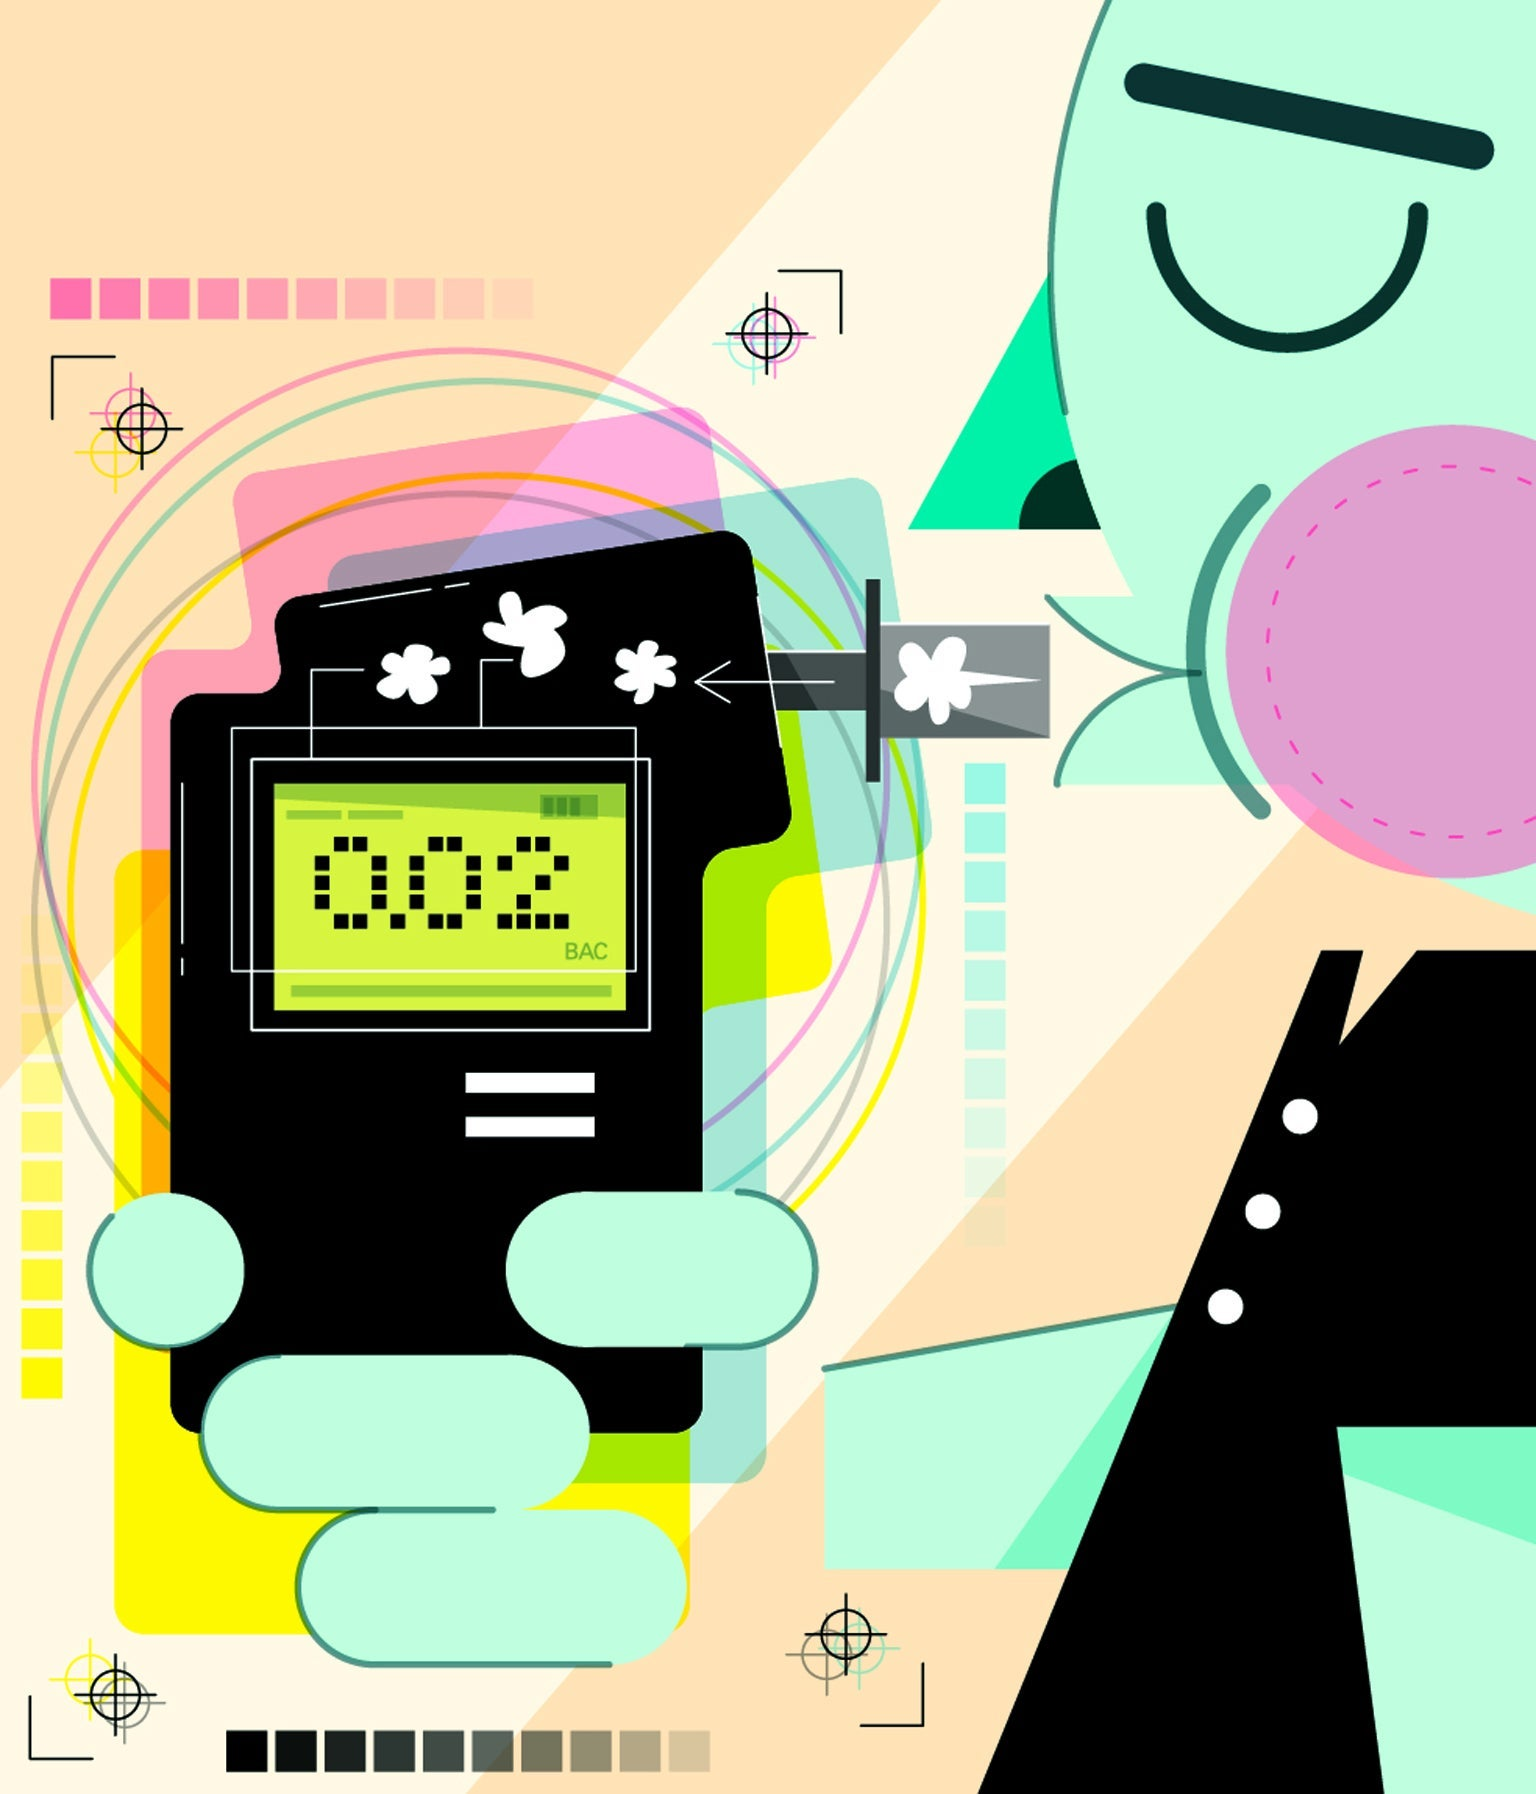 Ensuring Measurement Devices Are Accurate Is Tedious but Crucial